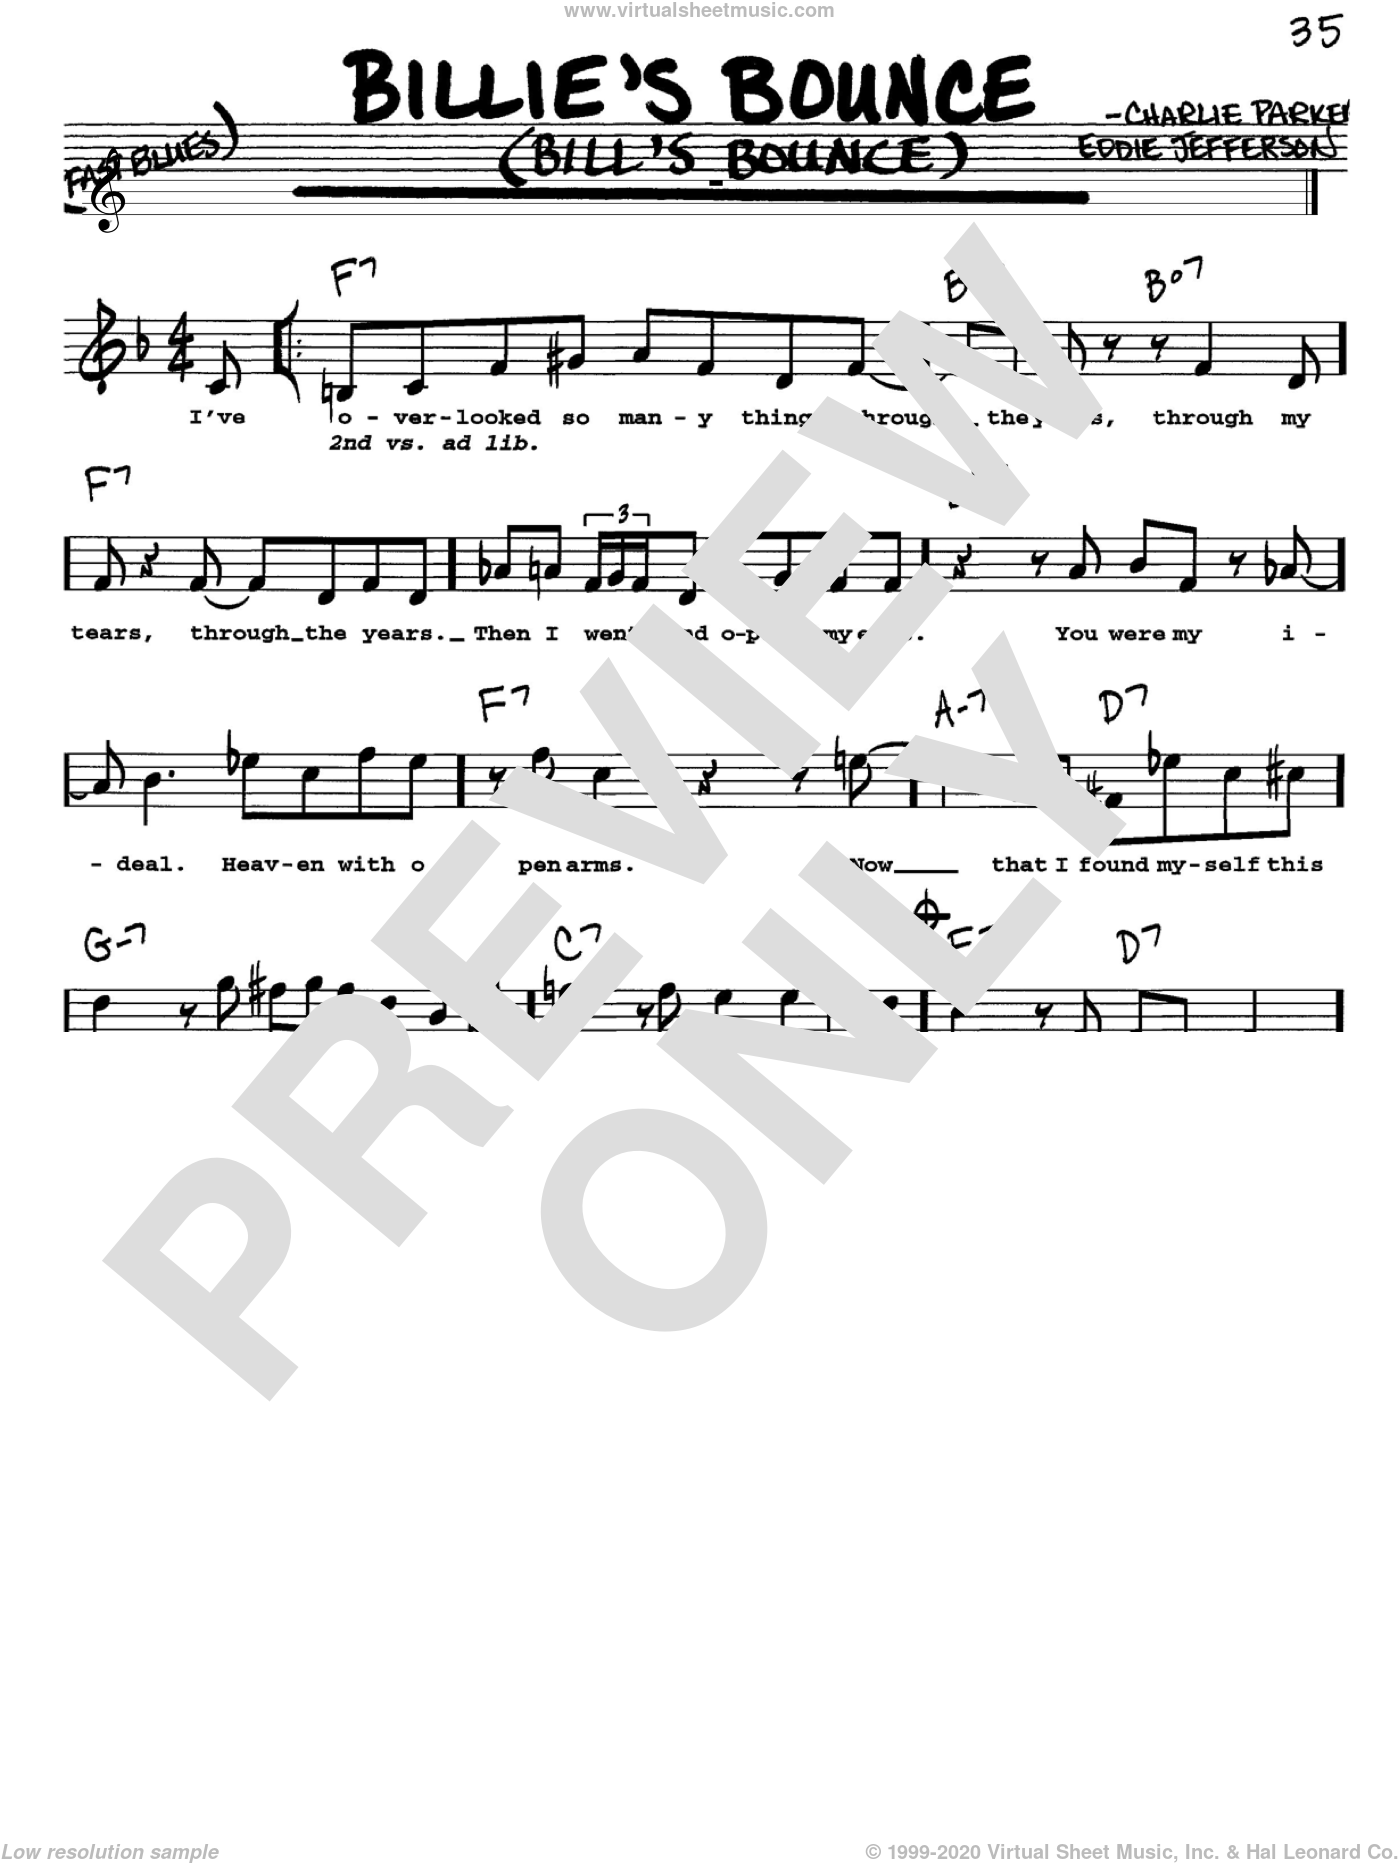 Billie's Bounce (Bill's Bounce) sheet music for voice and other instruments (Vocal Volume 1) by Charlie Parker